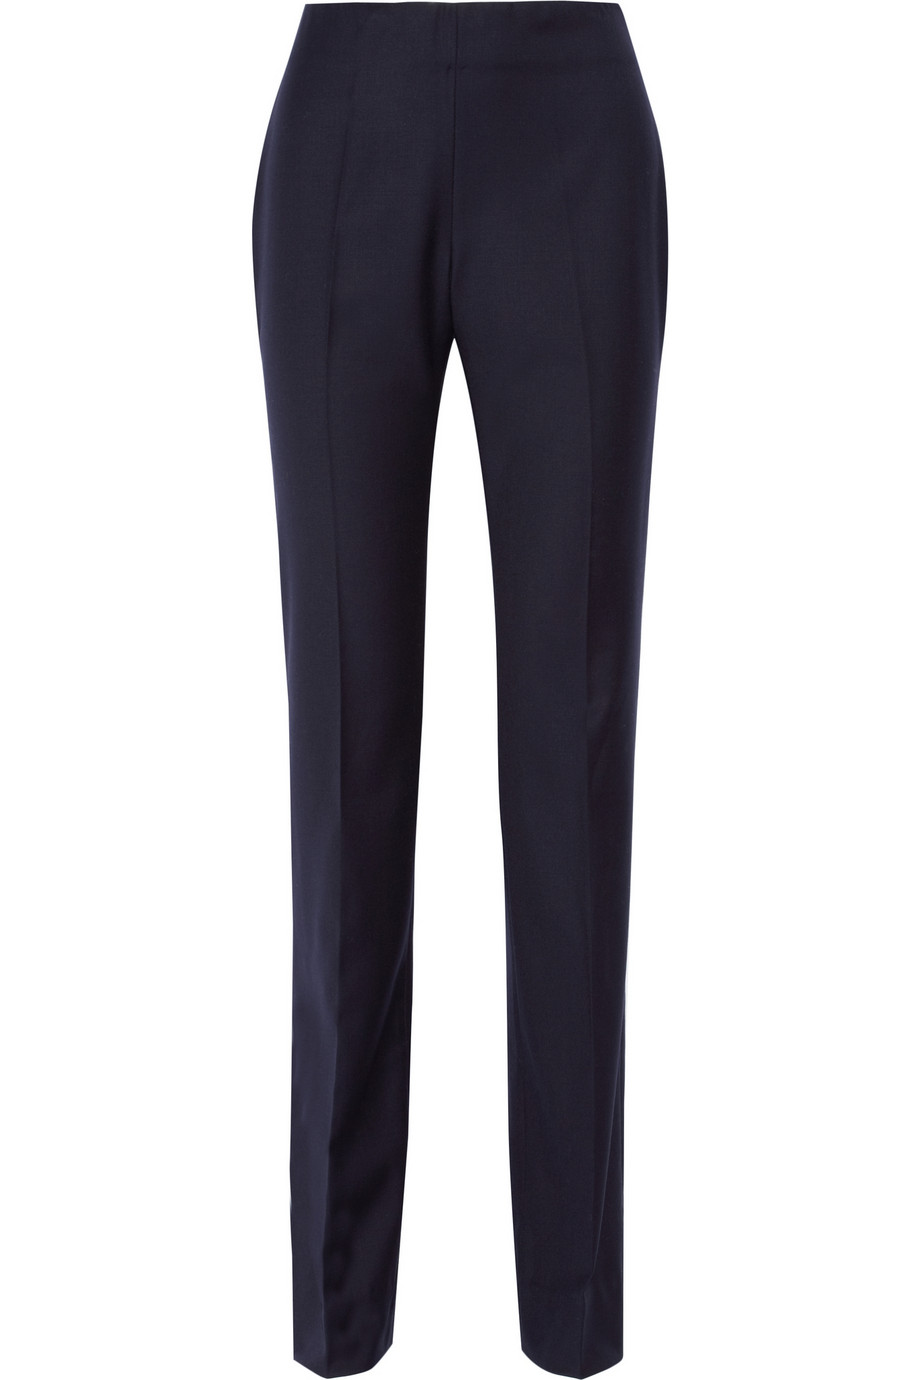 Oscar de la Renta Wool-twill straight-leg pants – 55% at THE OUTNET.COM